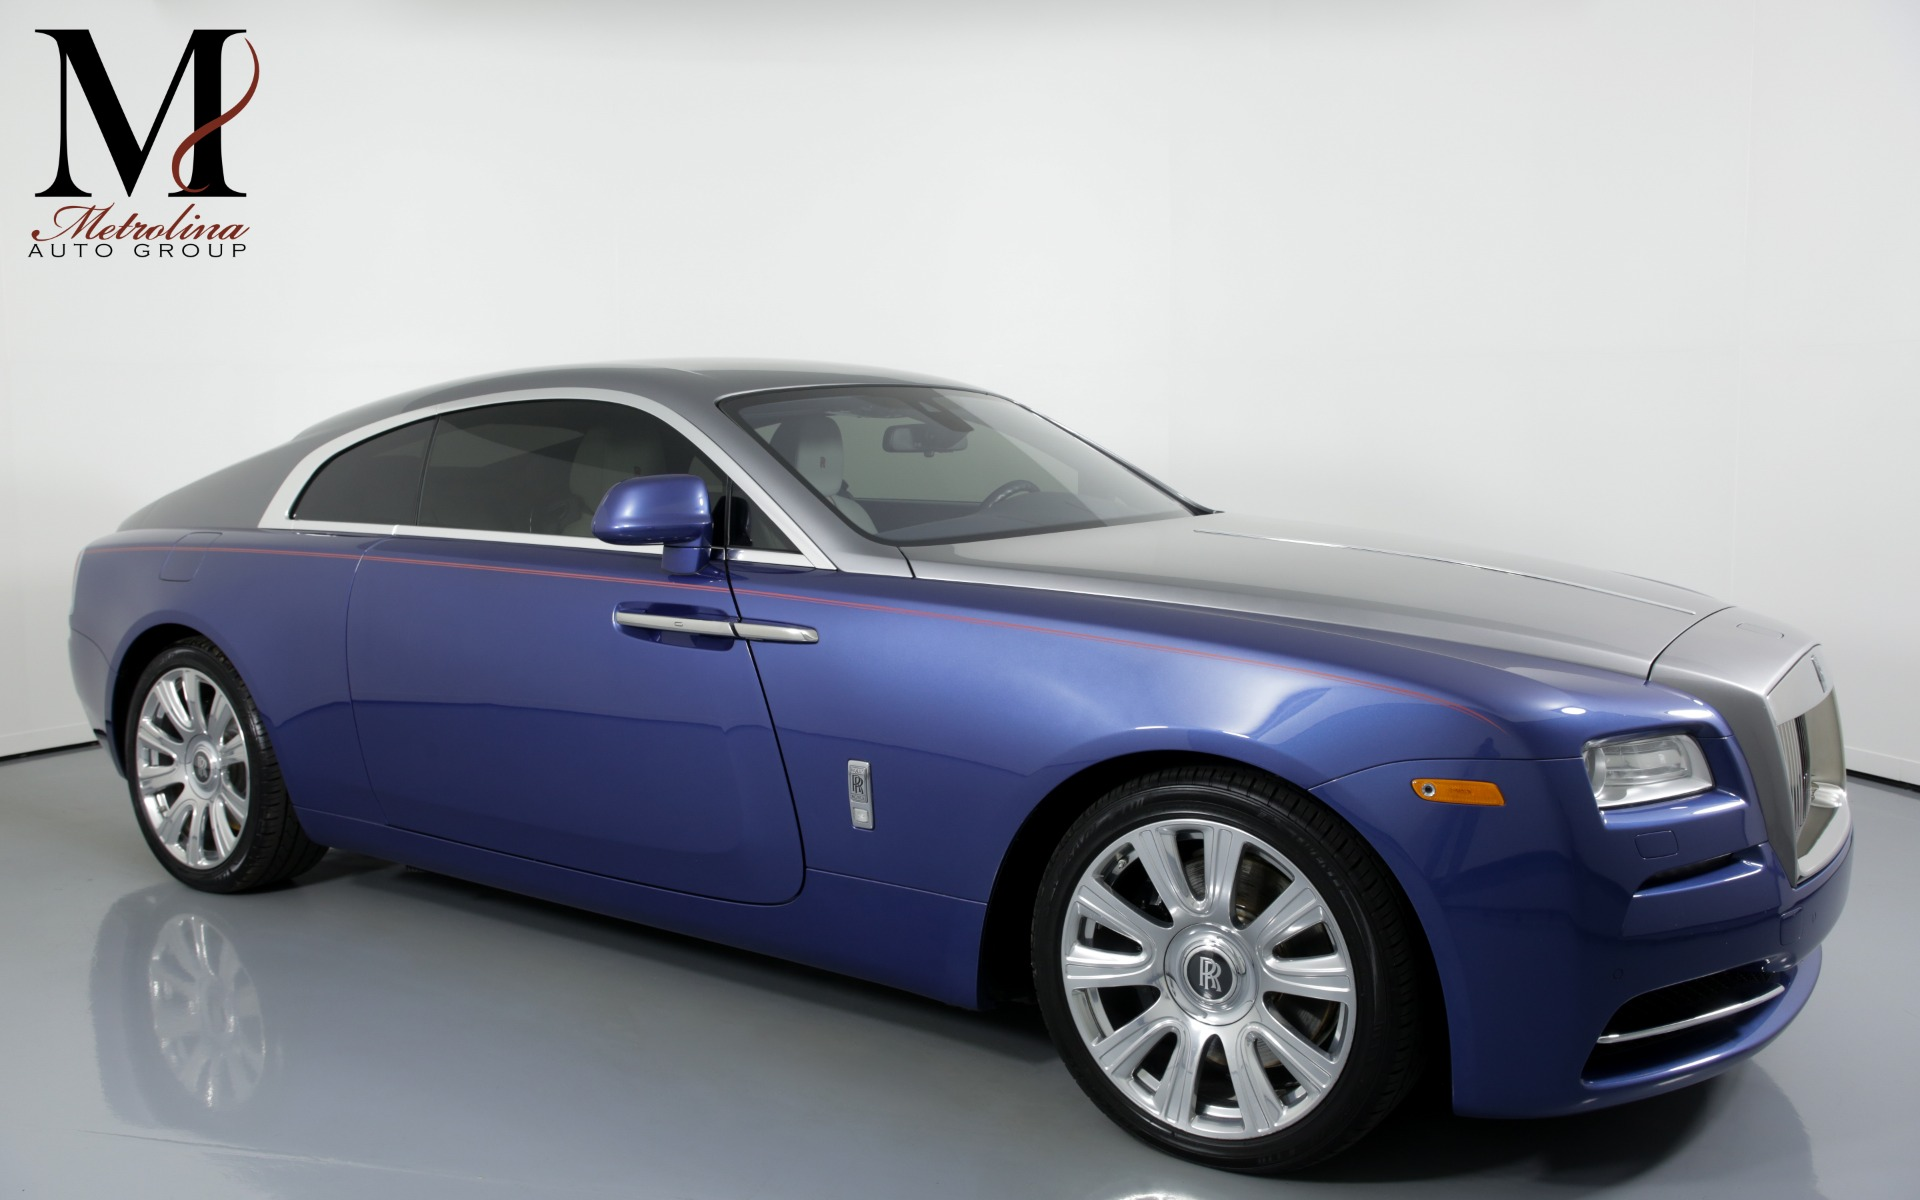 Used 2015 Rolls-Royce Wraith Base 2dr Coupe for sale Sold at Metrolina Auto Group in Charlotte NC 28217 - 1